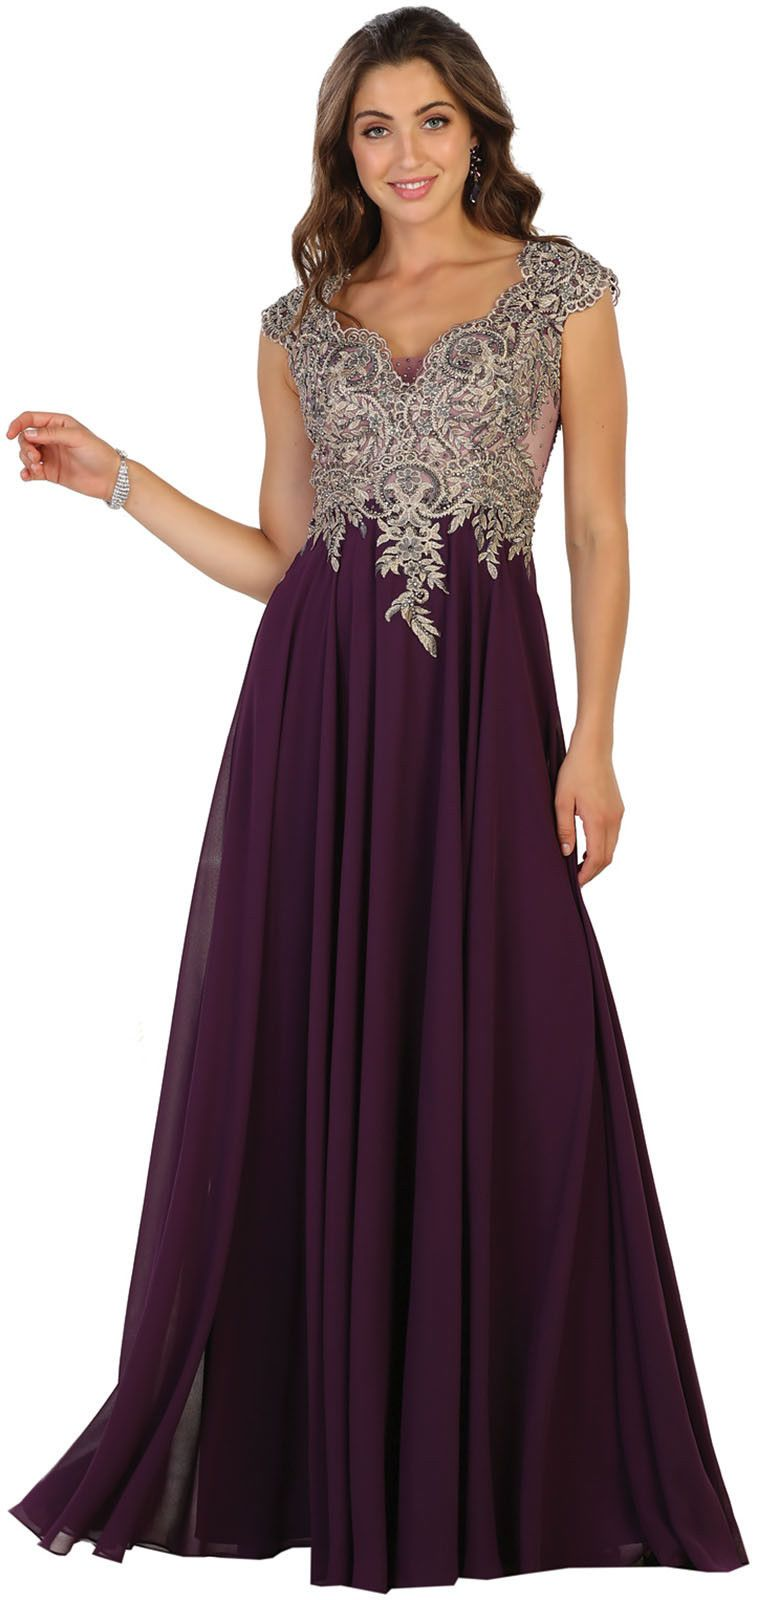 Nice amazing formal evening long special occasion prom dress